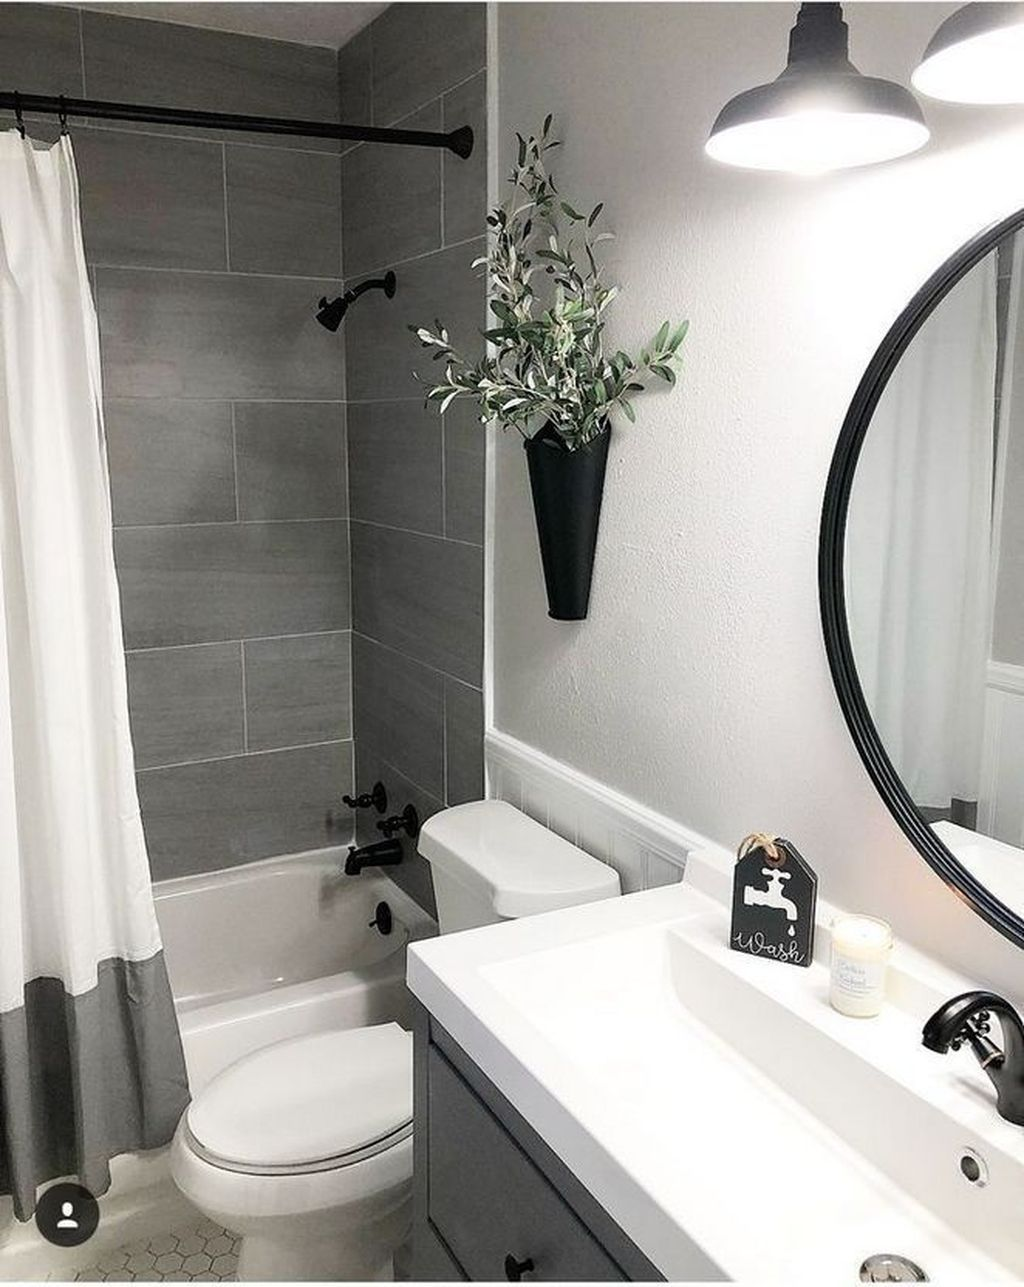 Pin By Queenk Crownmefabulous On House To Home In 2020 Apartment Bathroom Design Small Bathroom Decor Bathroom Design Small